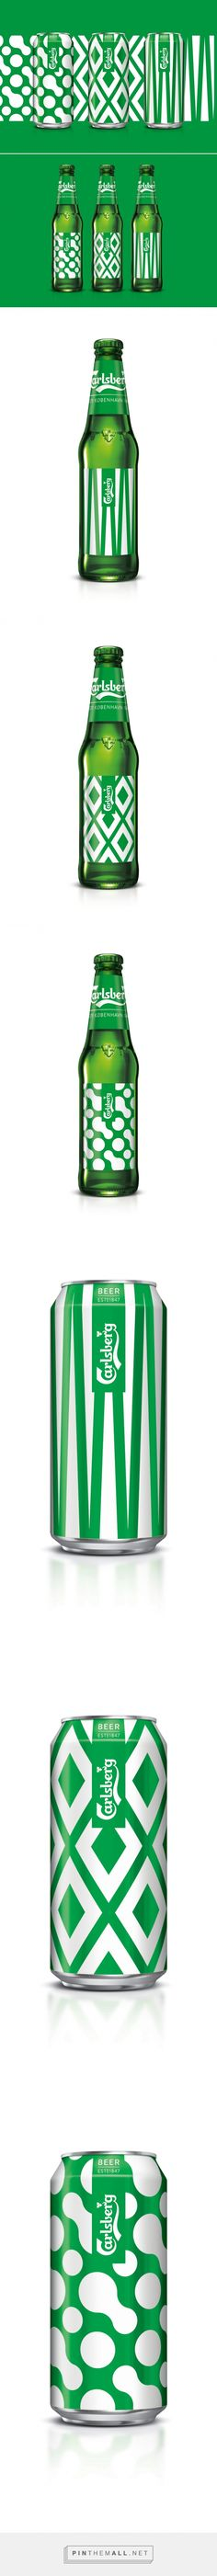 Carlsberg Limited Edition København Collection packaging design by Taxi Studio - http://www.packagingoftheworld.com/2017/01/carlsberg-limited-edition-kobenhavn.html